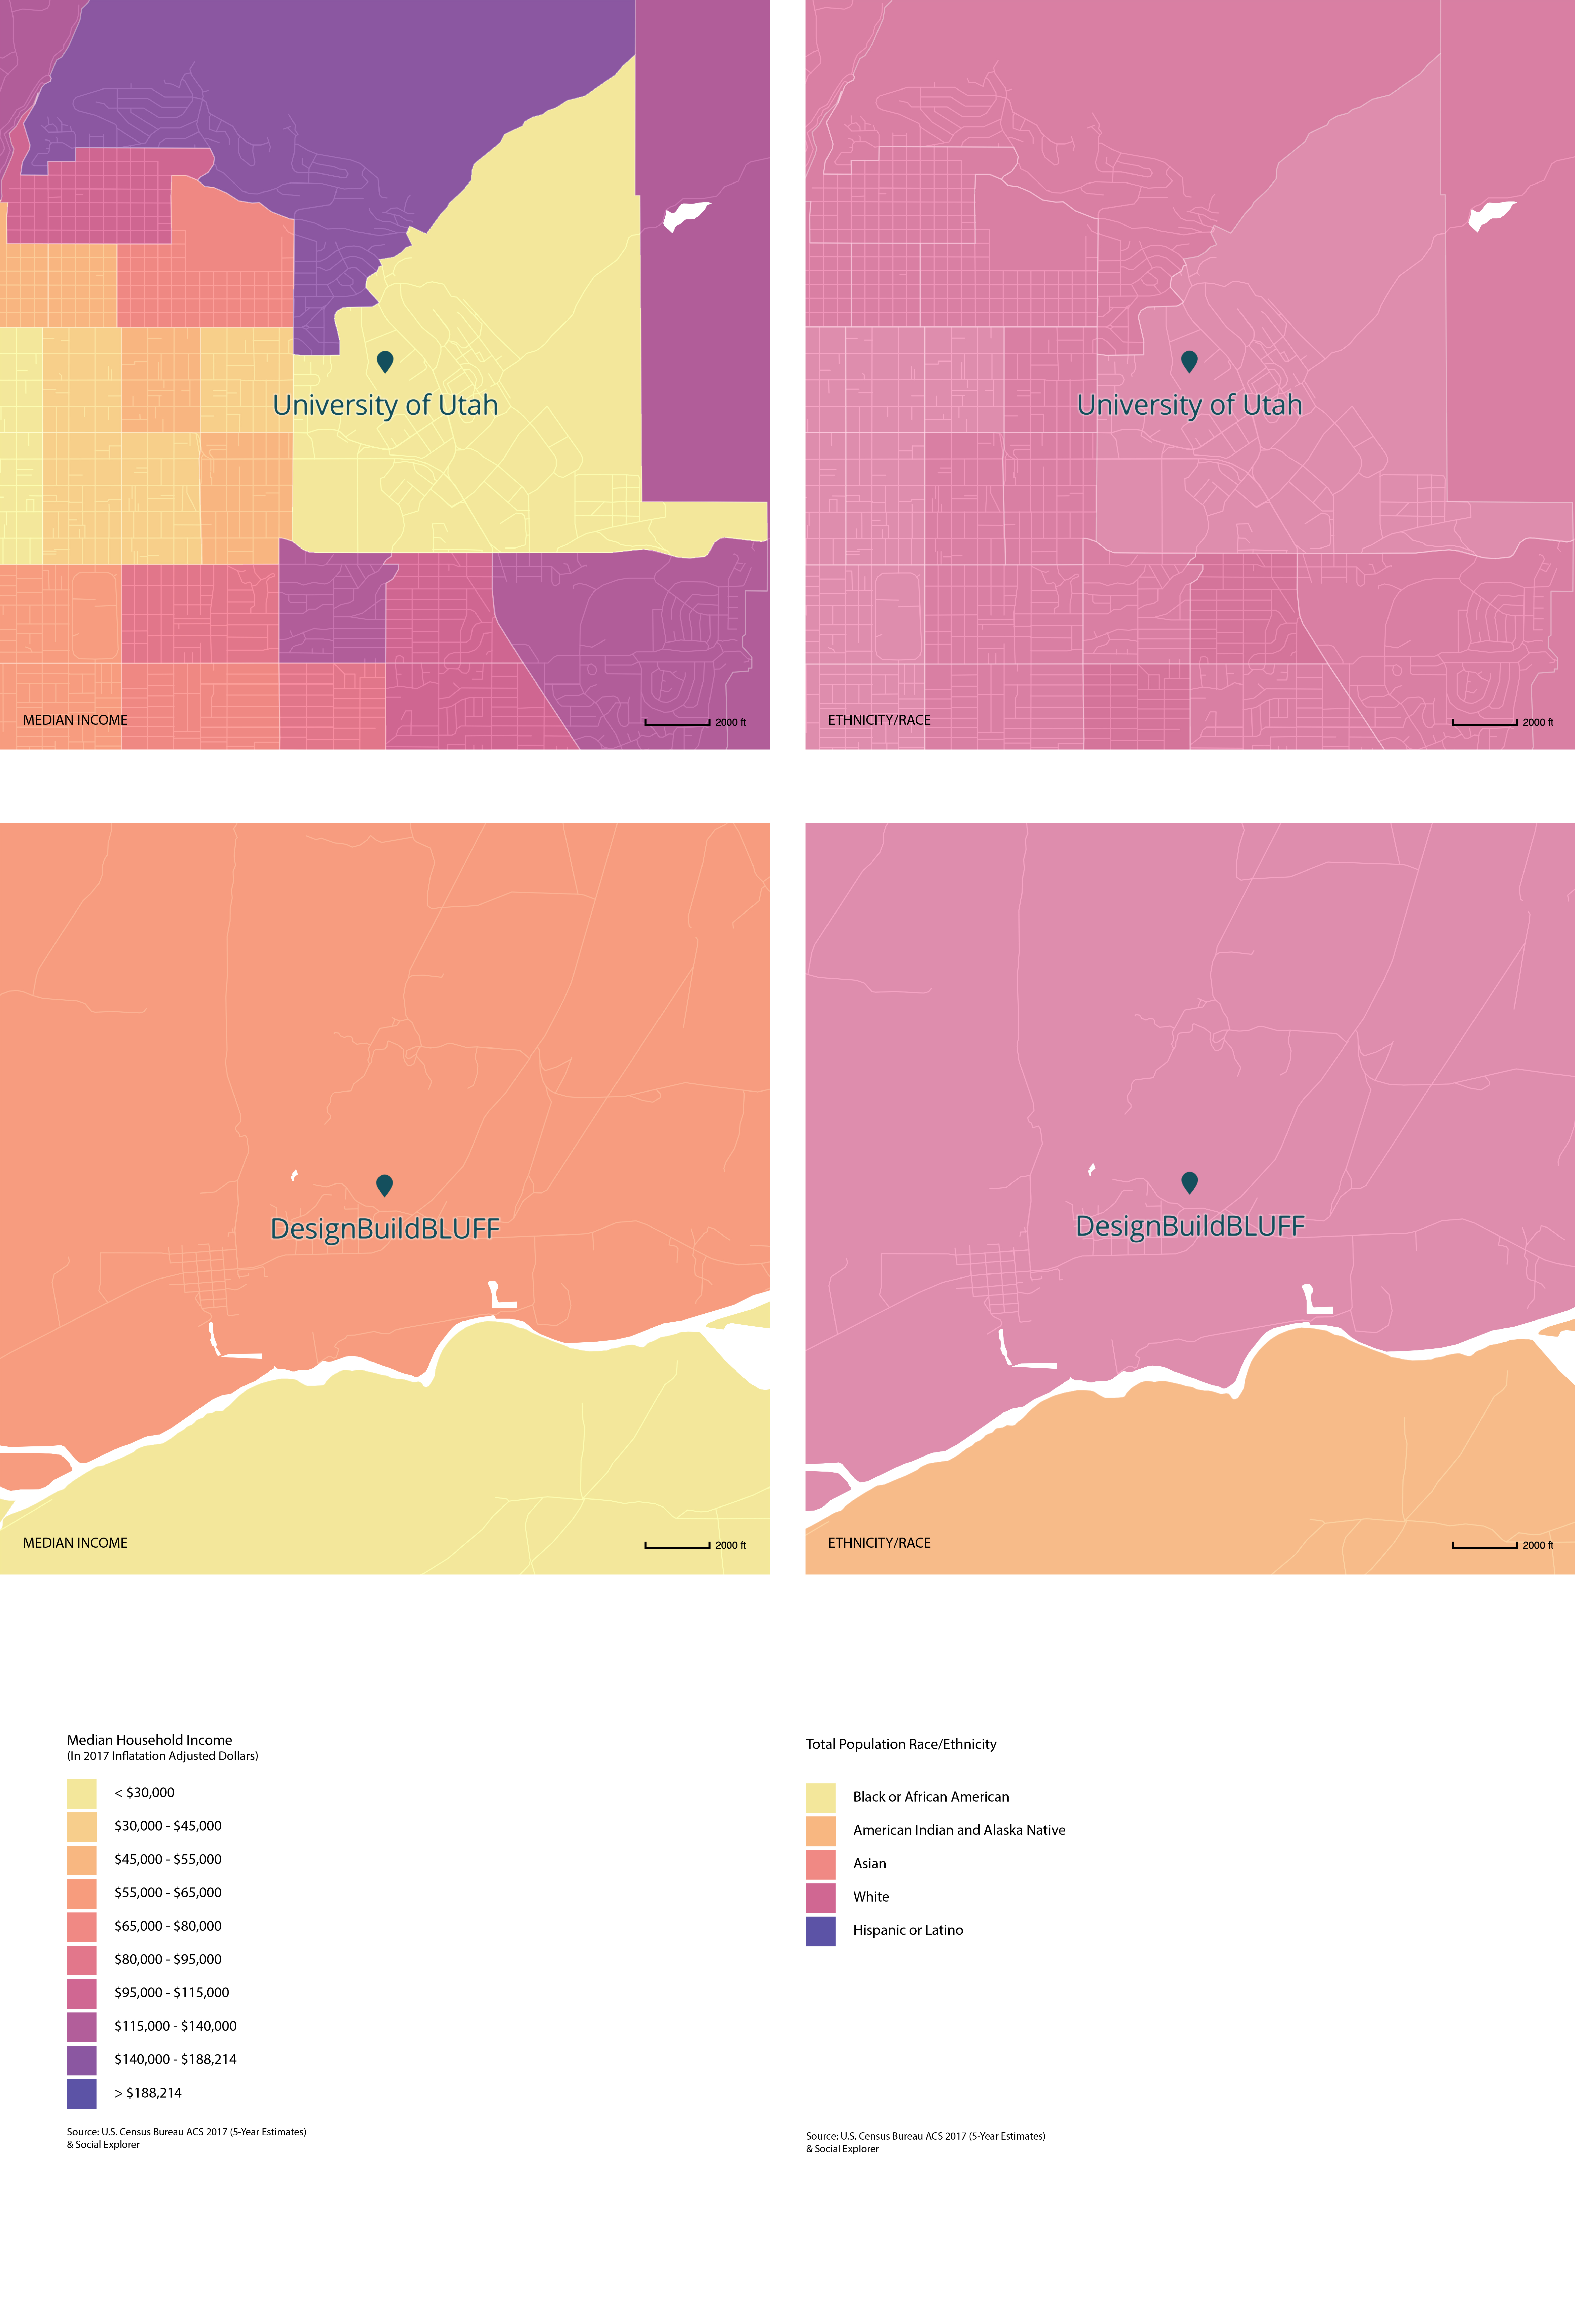 Income and Racial Demographics of Areas Surrounding the University of Utah and DesignBuildBLUFF